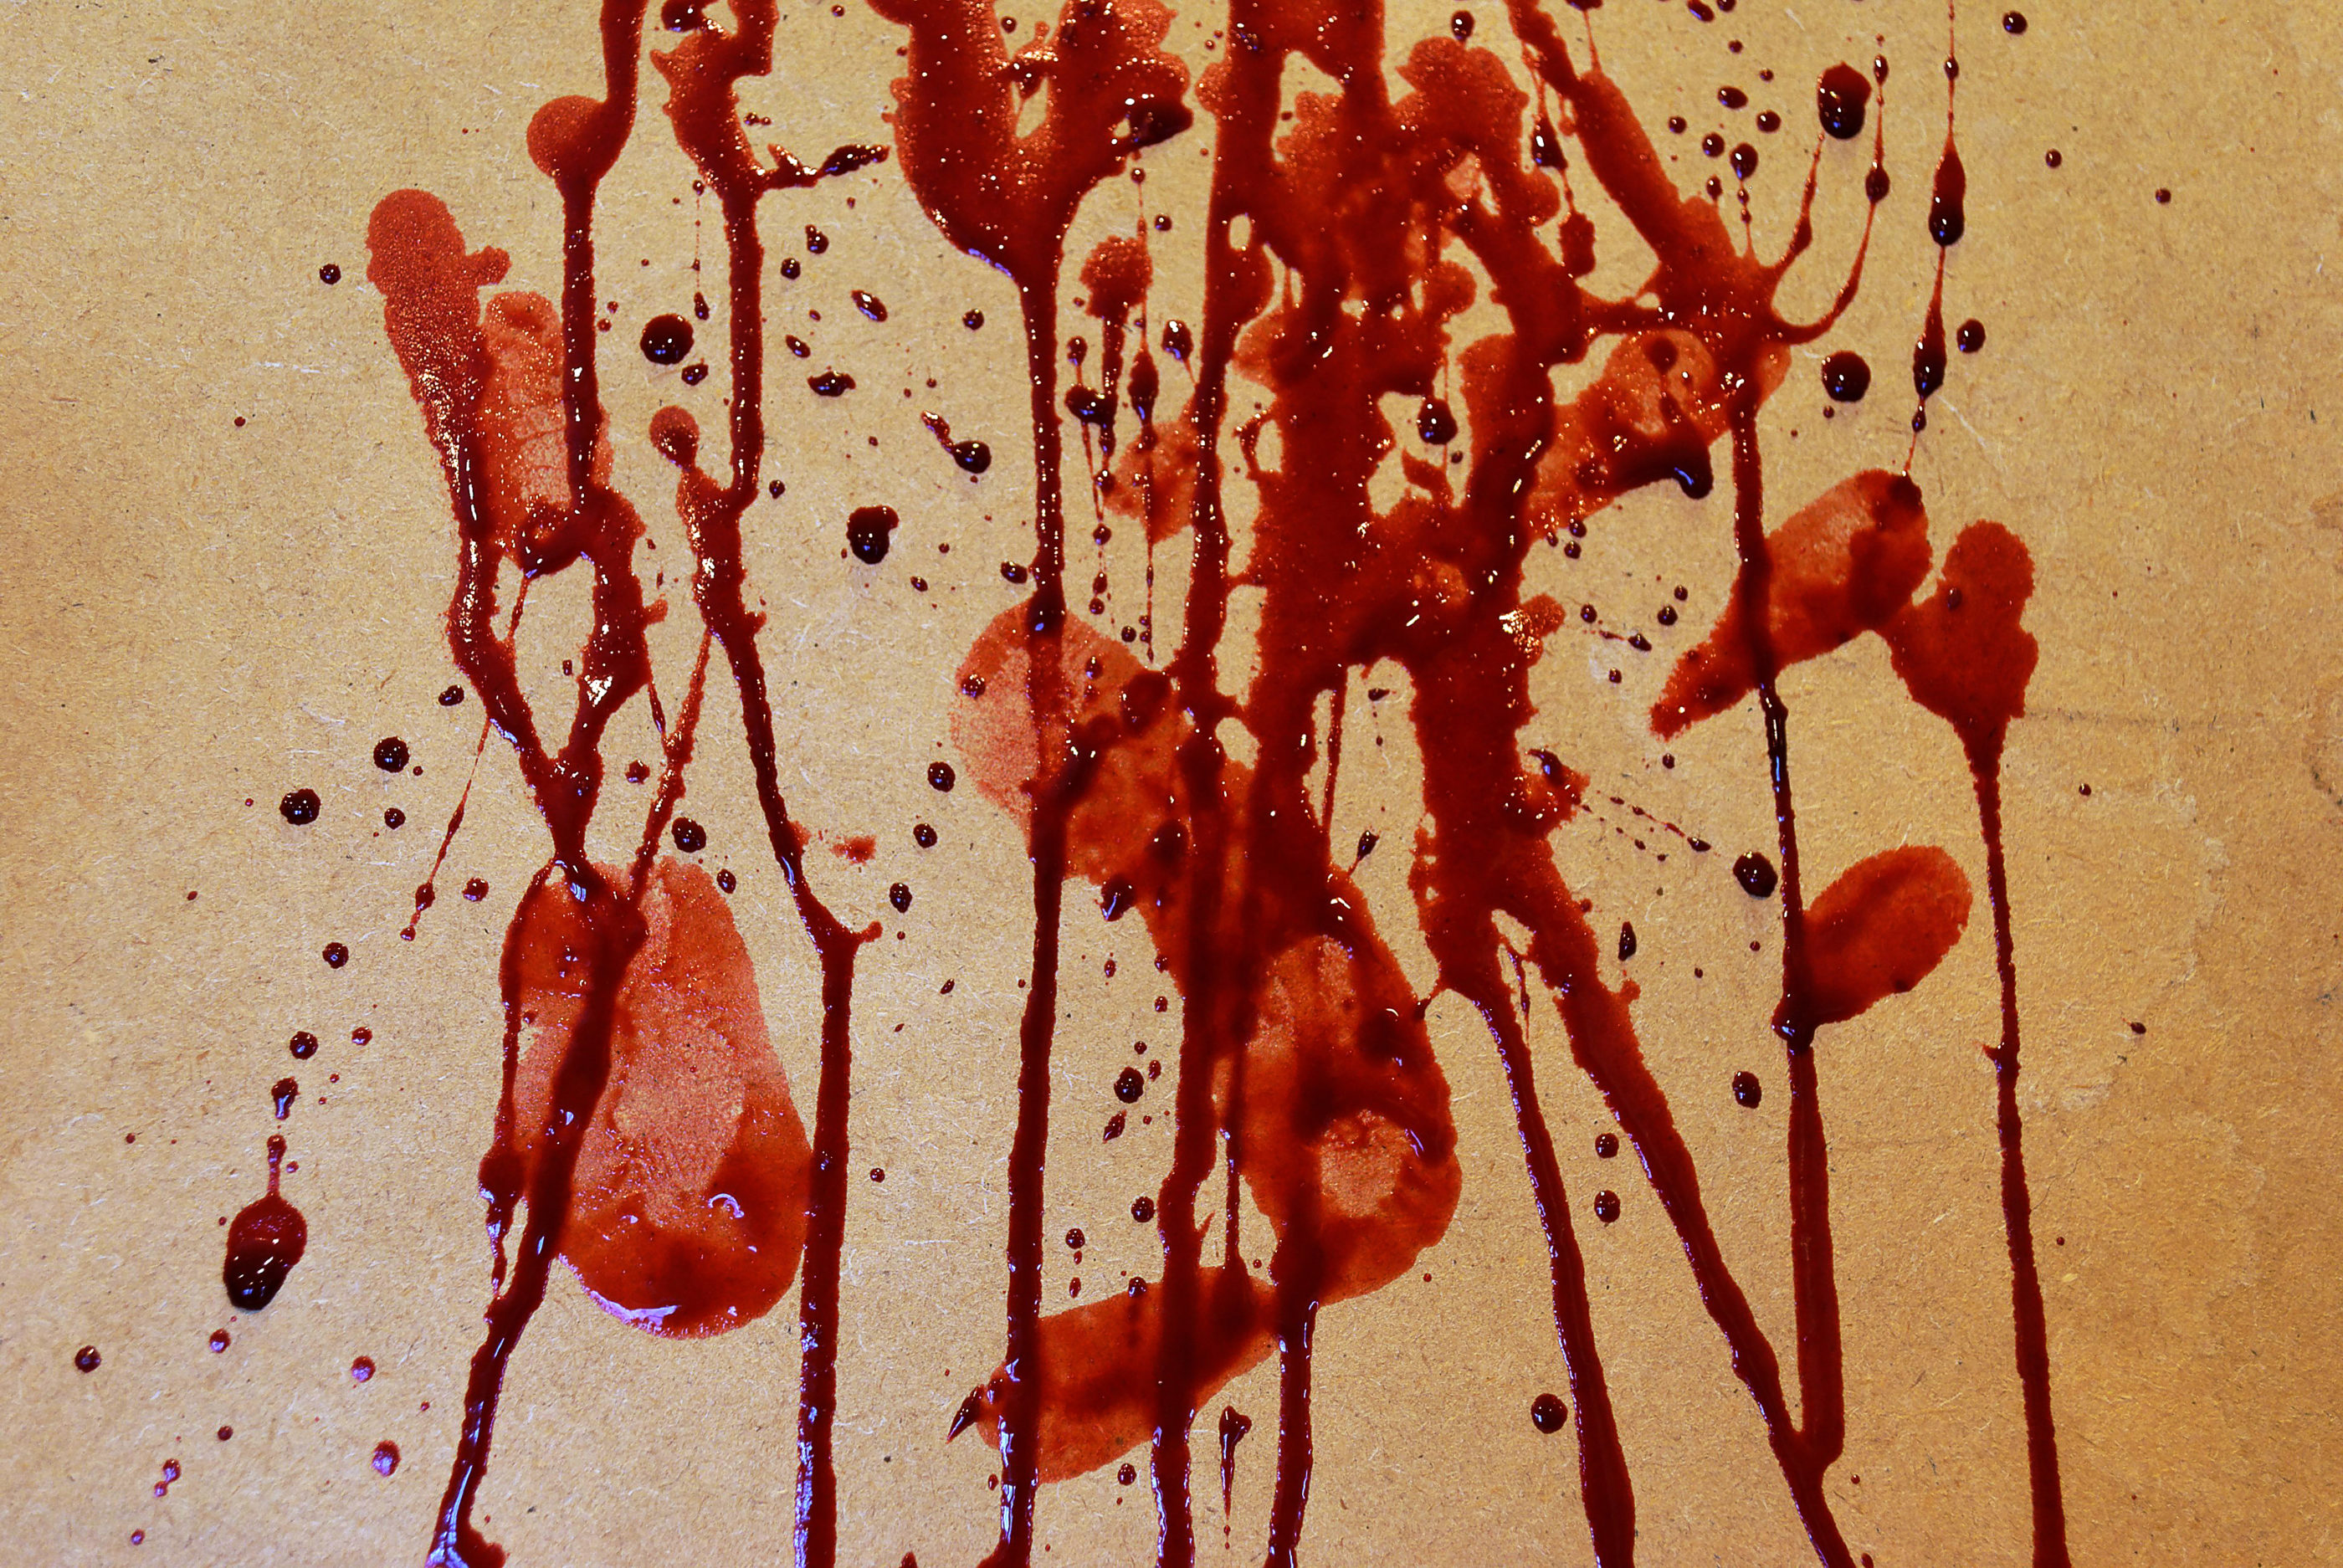 Blood_Splatter_3_by_KameleonKlik (1)